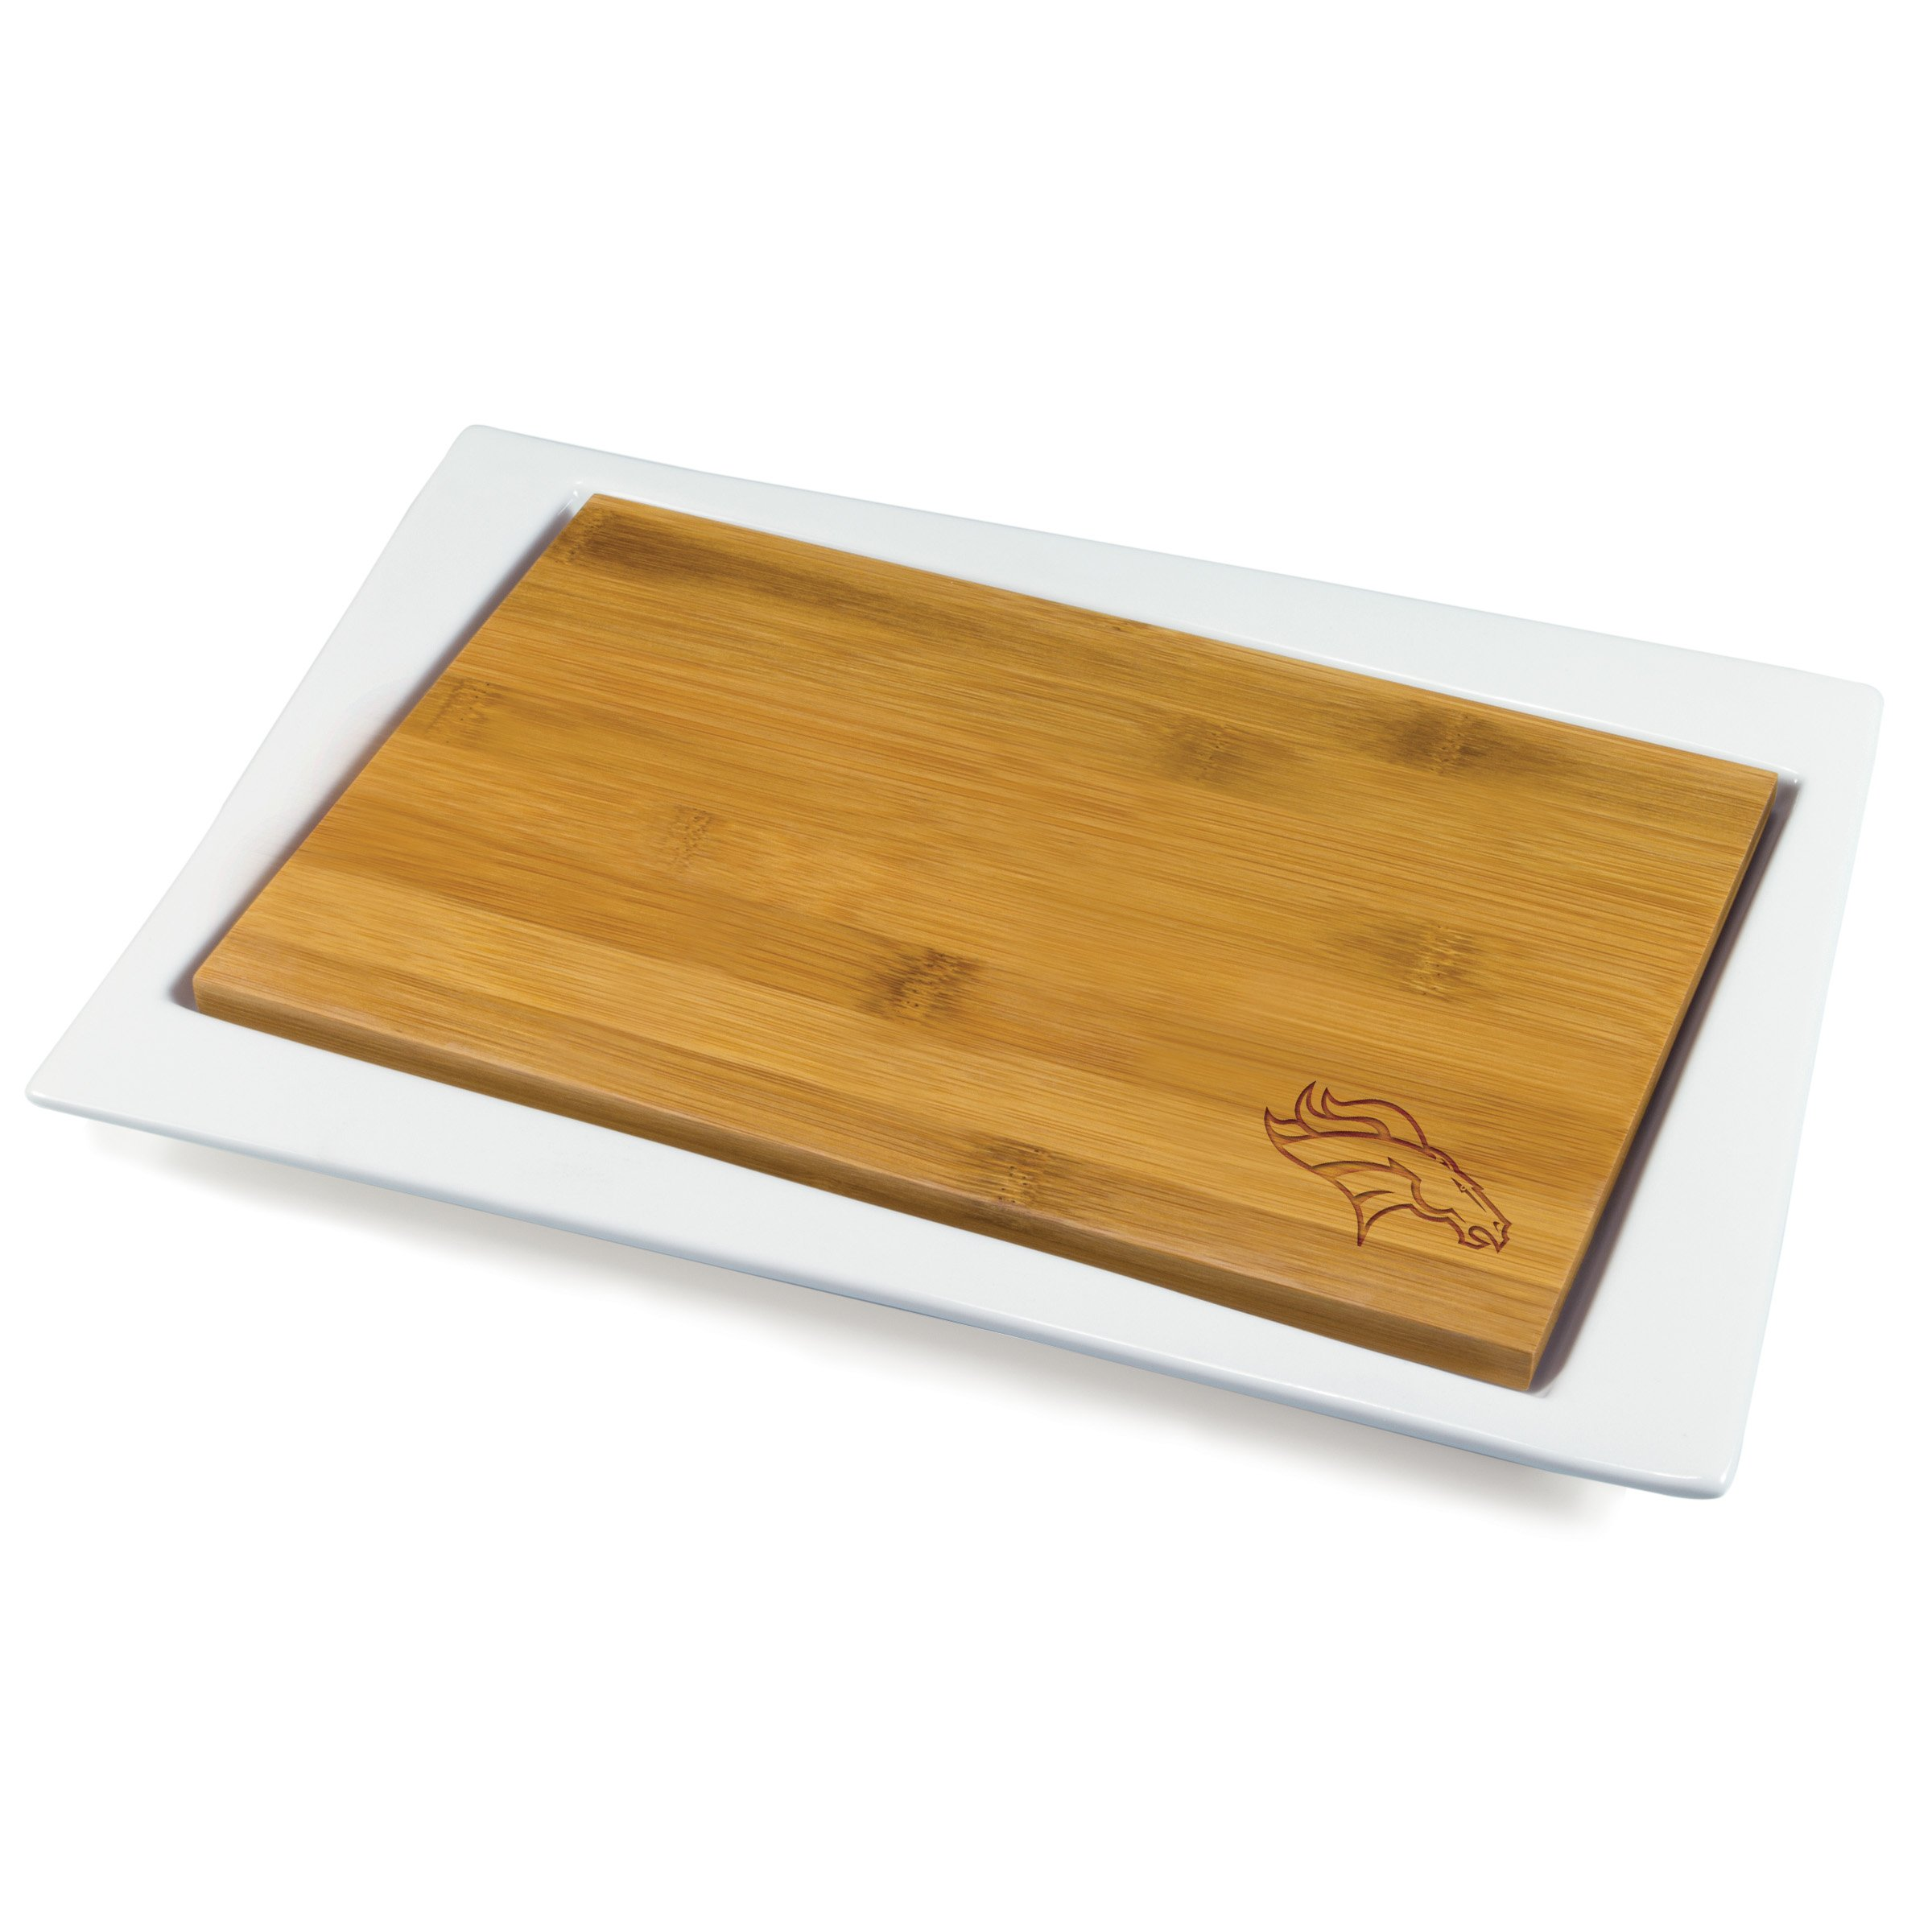 NFL Denver Broncos Homegating Enigma Serving Tray with Offset Cutting Board